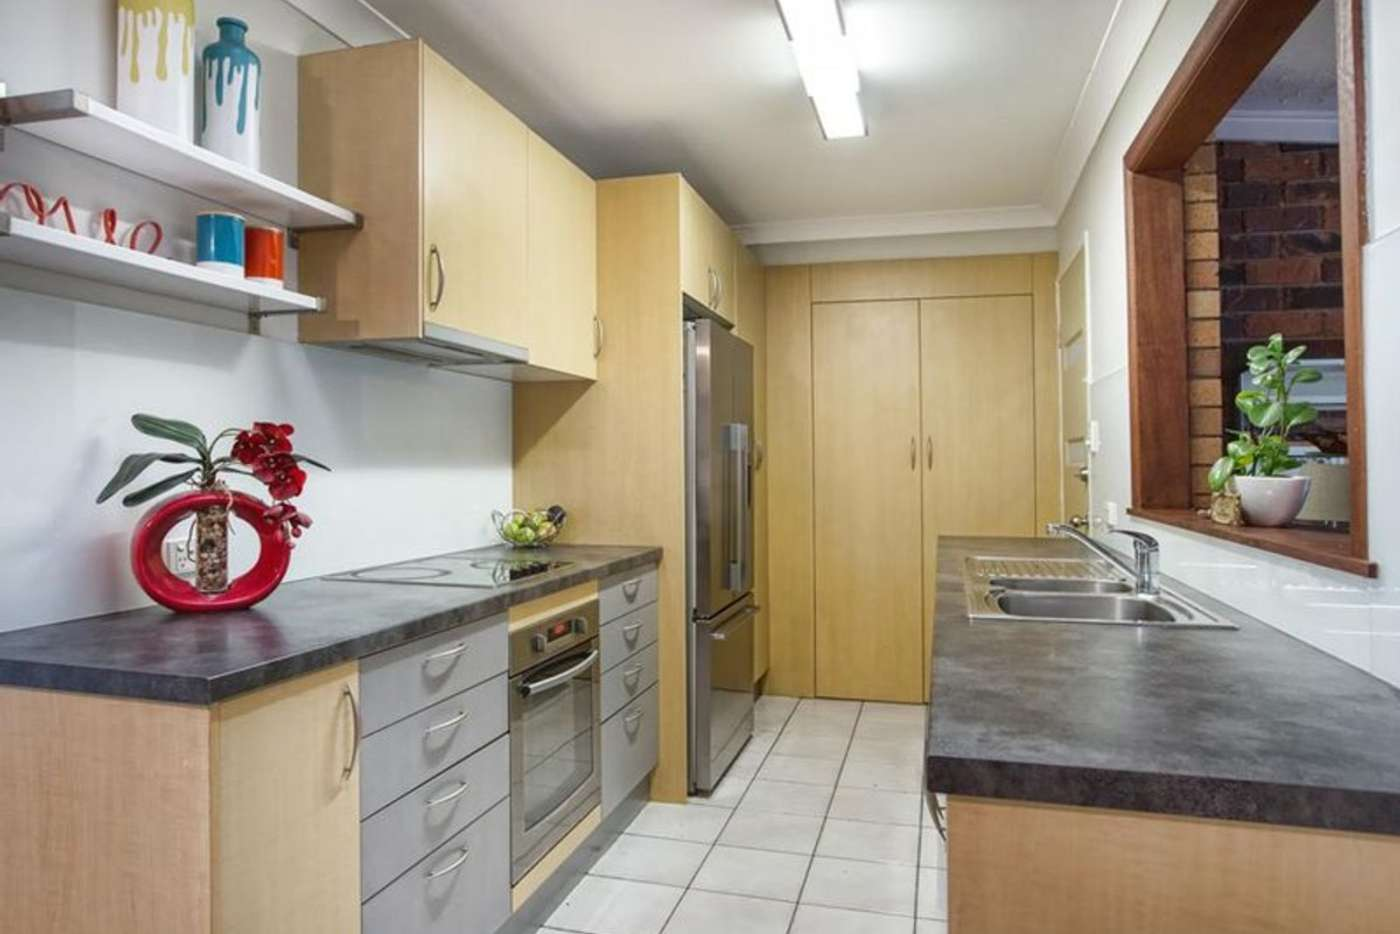 Sixth view of Homely house listing, 12 Zeil Street, Riverhills QLD 4074